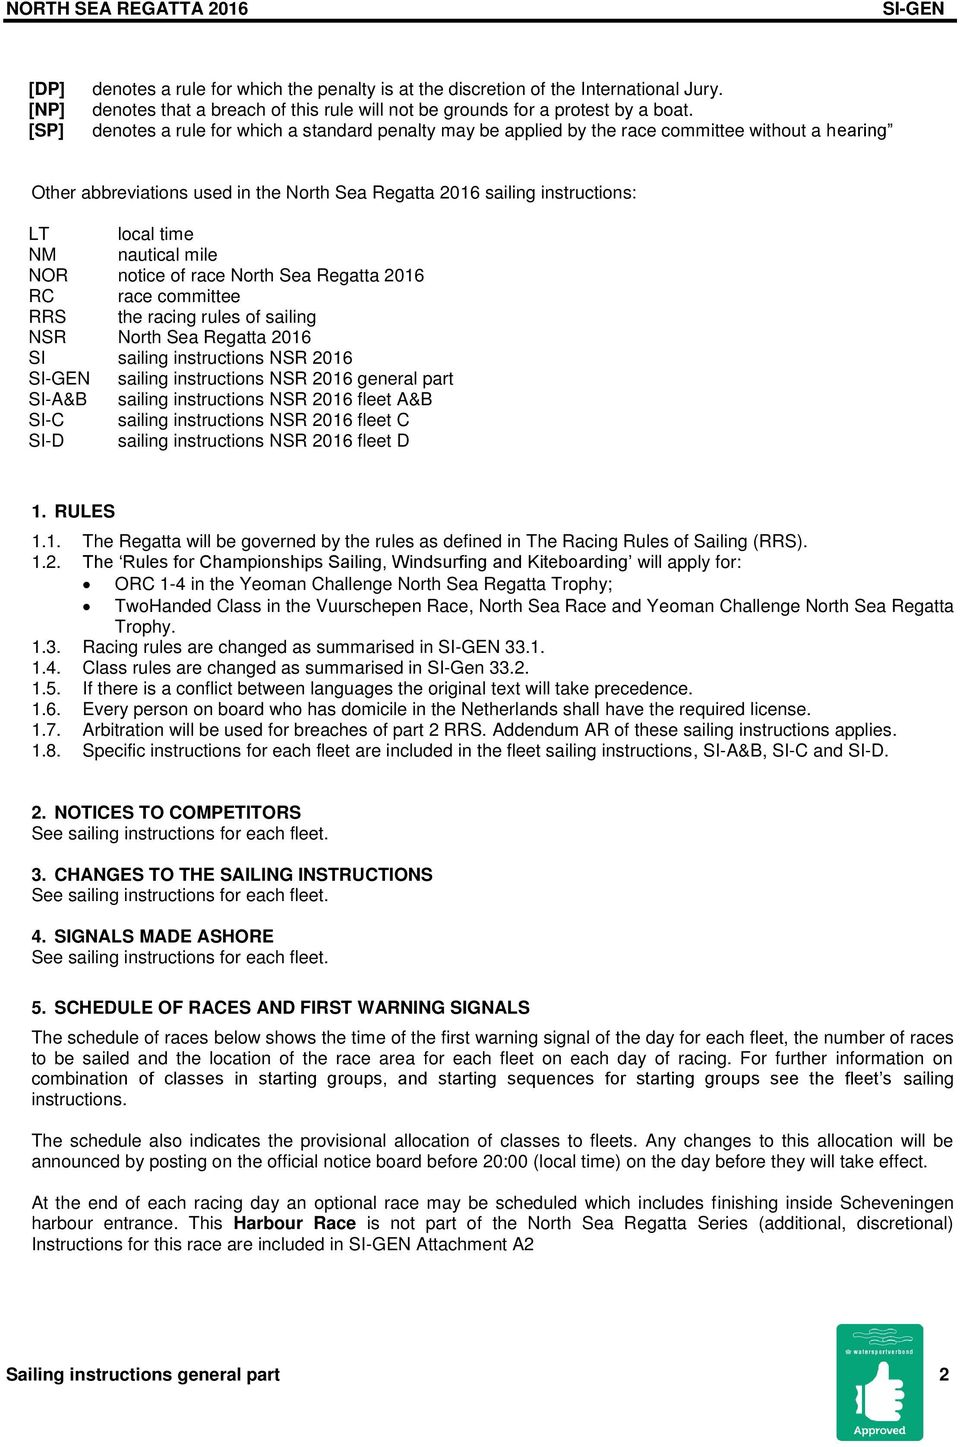 mile NOR notice of race North Sea Regatta RC race committee RRS the racing rules of sailing NSR North Sea Regatta SI sailing instructions NSR sailing instructions NSR general part SI-A&B sailing